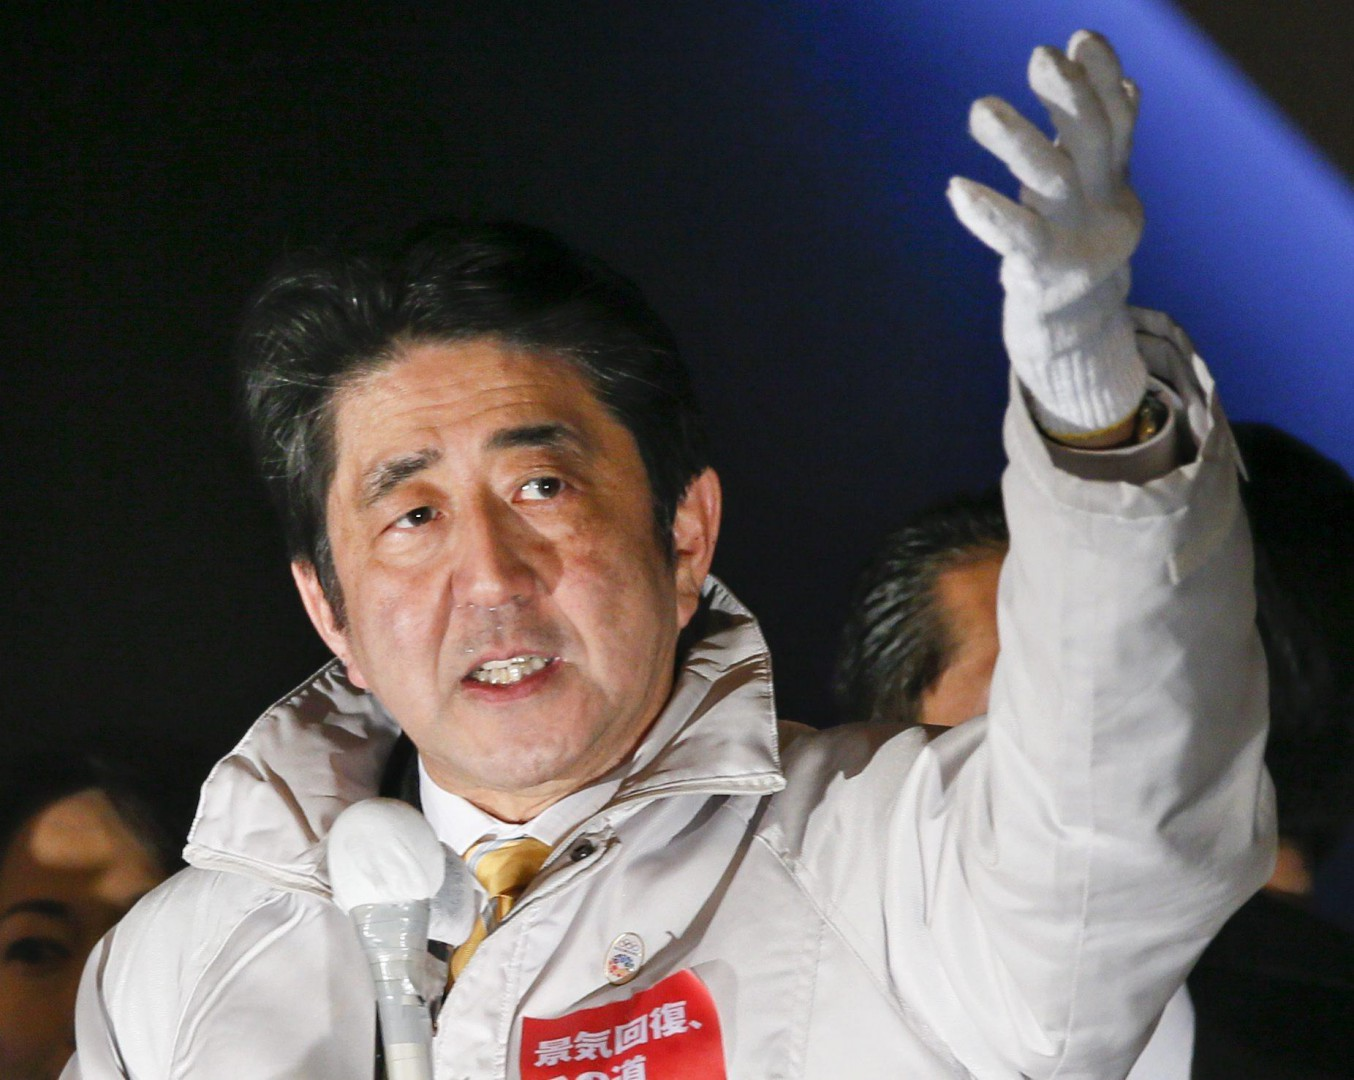 epa04527456 Japanese Prime Minister Shinzo Abe speaks to voters during last Lower House election campaign in Tokyo, Japan, 13 December 2014, the eve of the election. The Lower House election will be voted on 14 December while the polls of the election foresee the ruling Liberal Democratic Party and its coalition partner Komeito will sweep to power. The extraordinary parliamentary sessionis expected to appoint new prime minister on 24 December 2014.  EPA/KIMIMASA MAYAMA